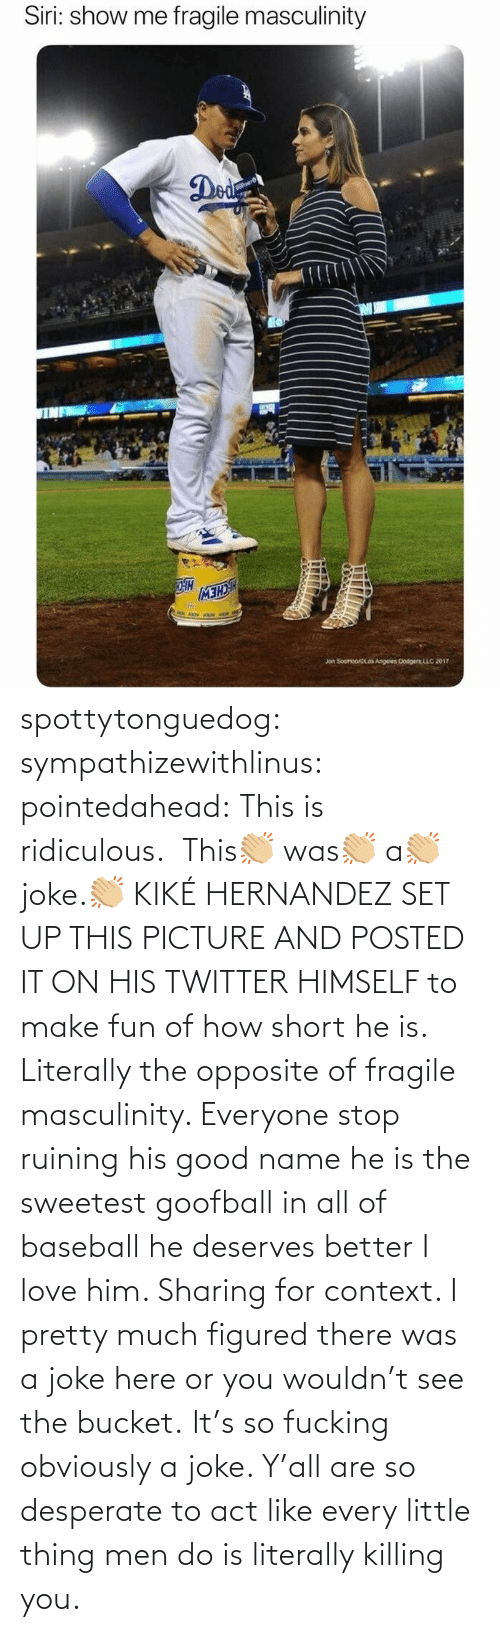 Killing: spottytonguedog:  sympathizewithlinus:   pointedahead: This is ridiculous.  This👏🏼 was👏🏼 a👏🏼 joke.👏🏼 KIKÉ HERNANDEZ SET UP THIS PICTURE AND POSTED IT ON HIS TWITTER HIMSELF to make fun of how short he is. Literally the opposite of fragile masculinity. Everyone stop ruining his good name he is the sweetest goofball in all of baseball he deserves better I love him.    Sharing for context. I pretty much figured there was a joke here or you wouldn't see the bucket.    It's so fucking obviously a joke. Y'all are so desperate to act like every little thing men do is literally killing you.